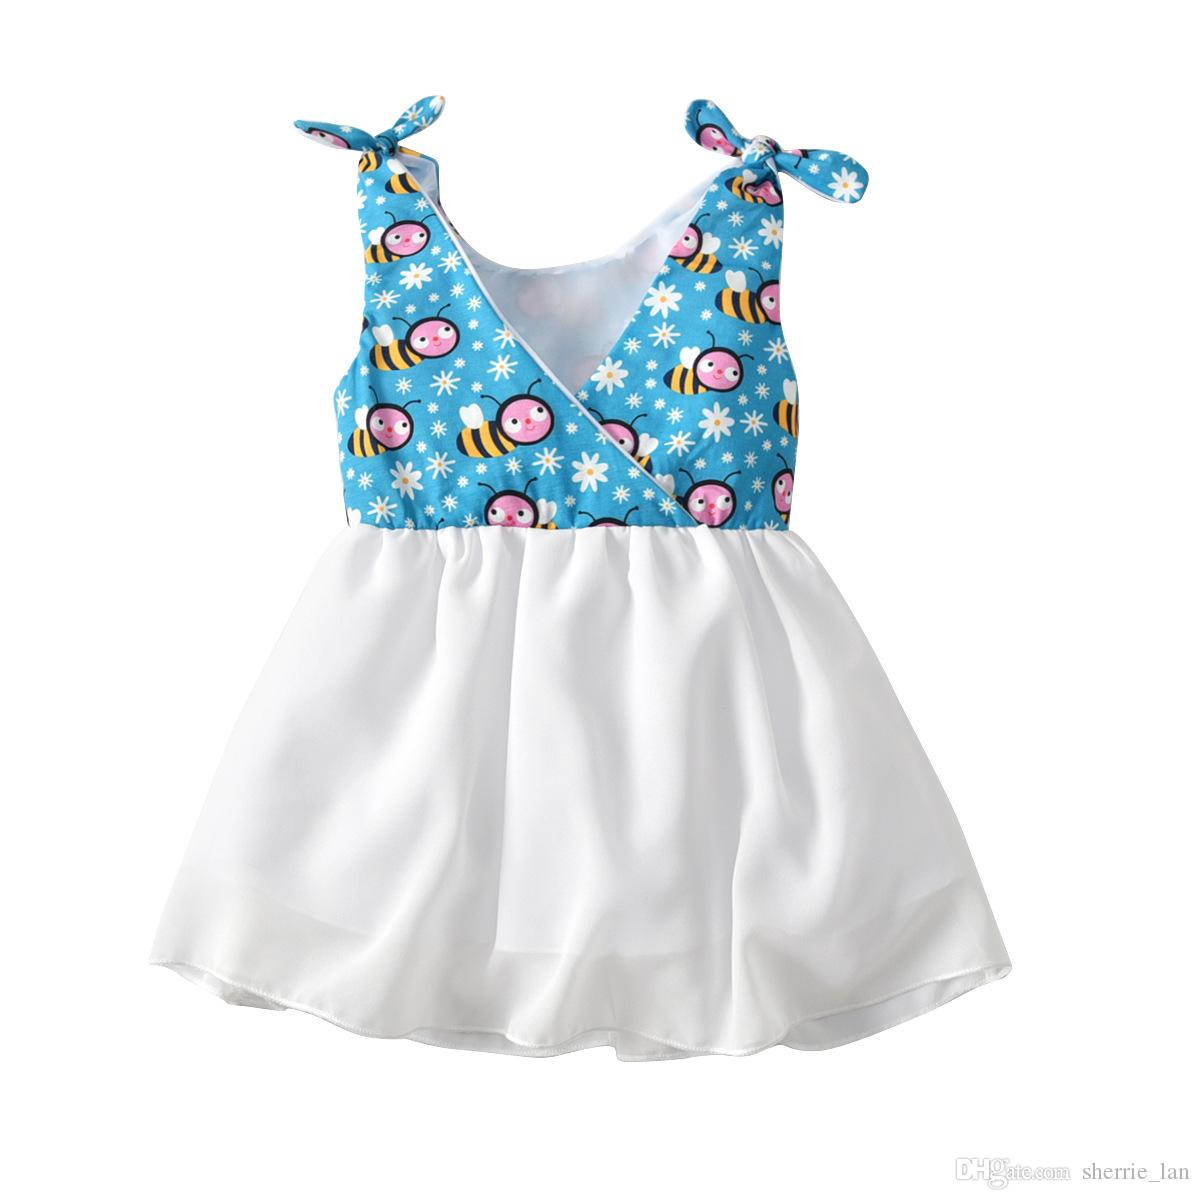 Latest Infant Baby Toddler Children's wear Good quality Casual cotton linen summer baby girl dresses style baby Blue frock designs